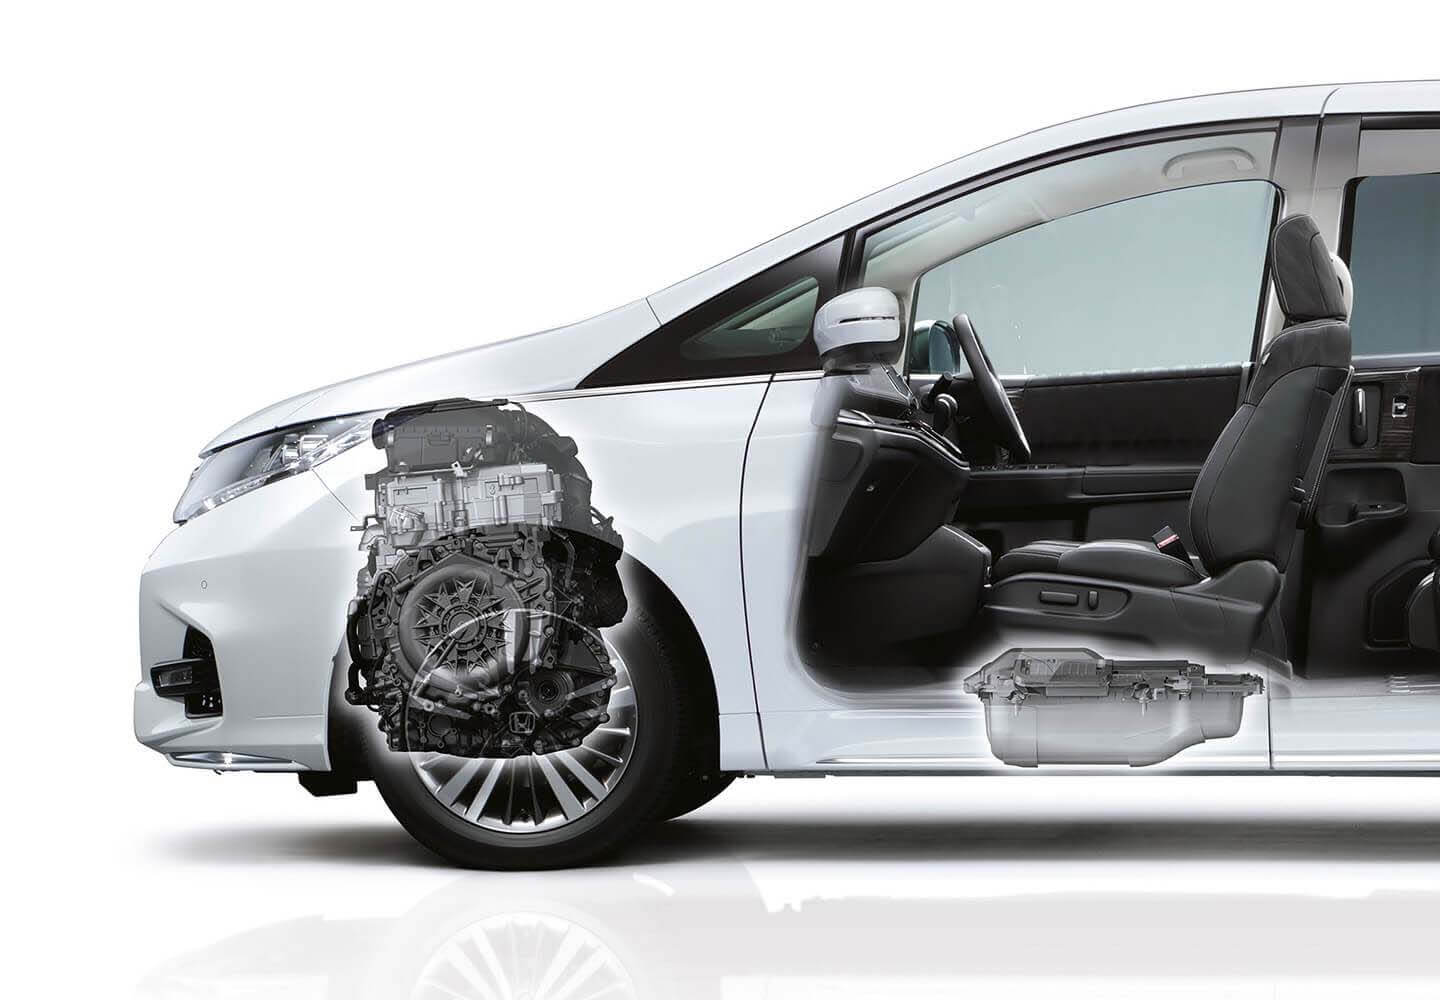 Odyssey Vehicle Stability Assist (VSA)